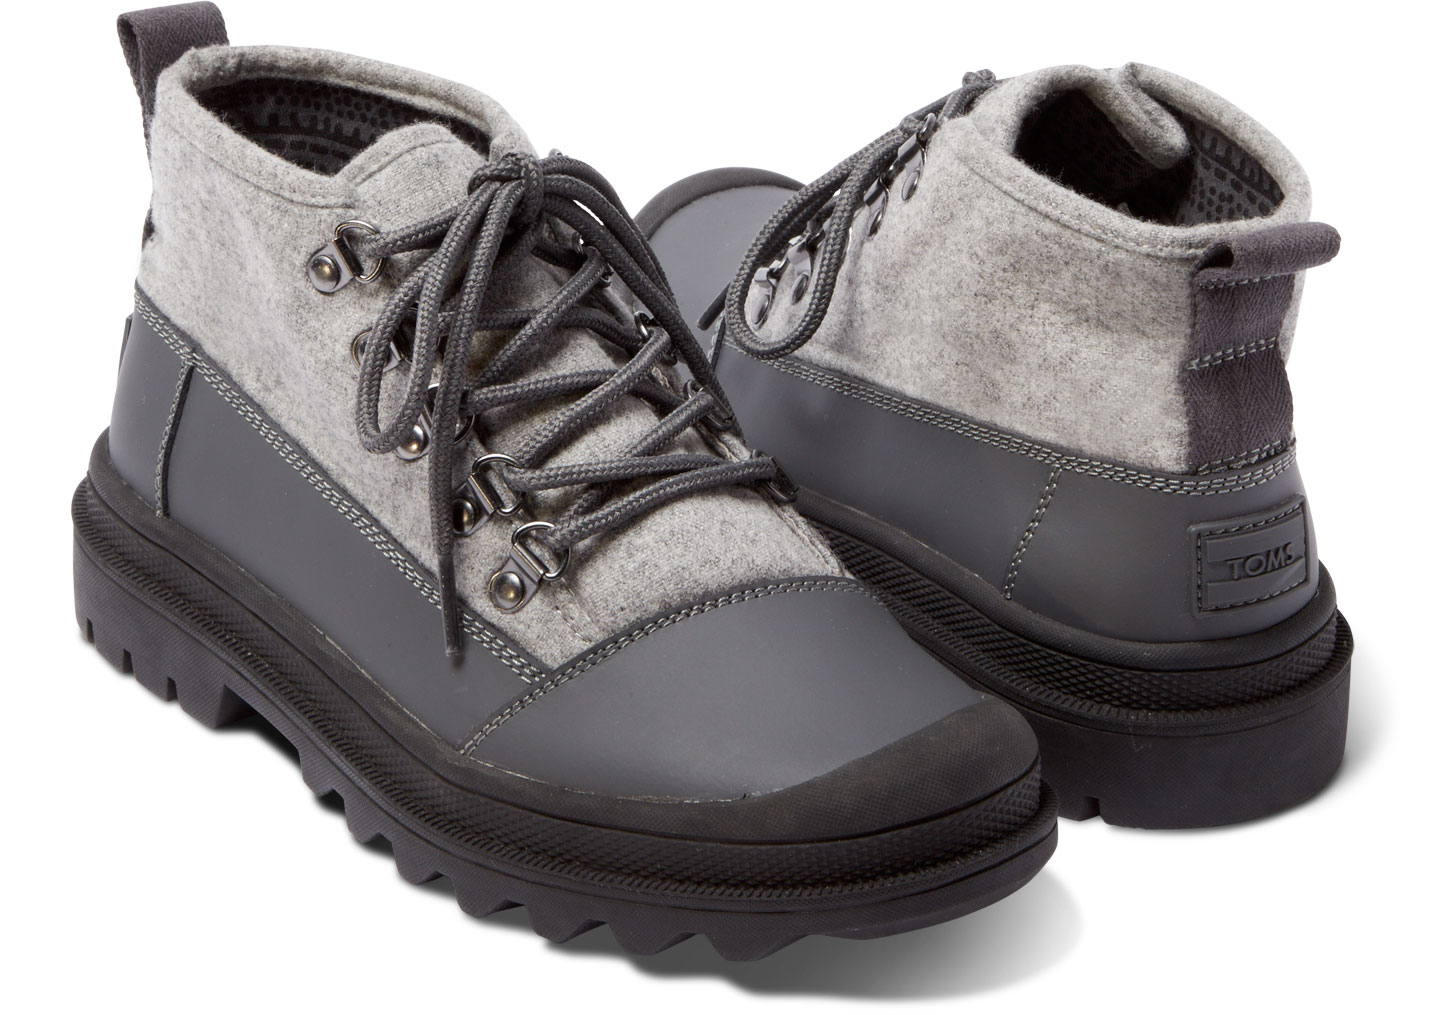 TOMS CASTLERROCK GREY ON LIGHT GREY WOOL MENS CORDOVA BOOTS